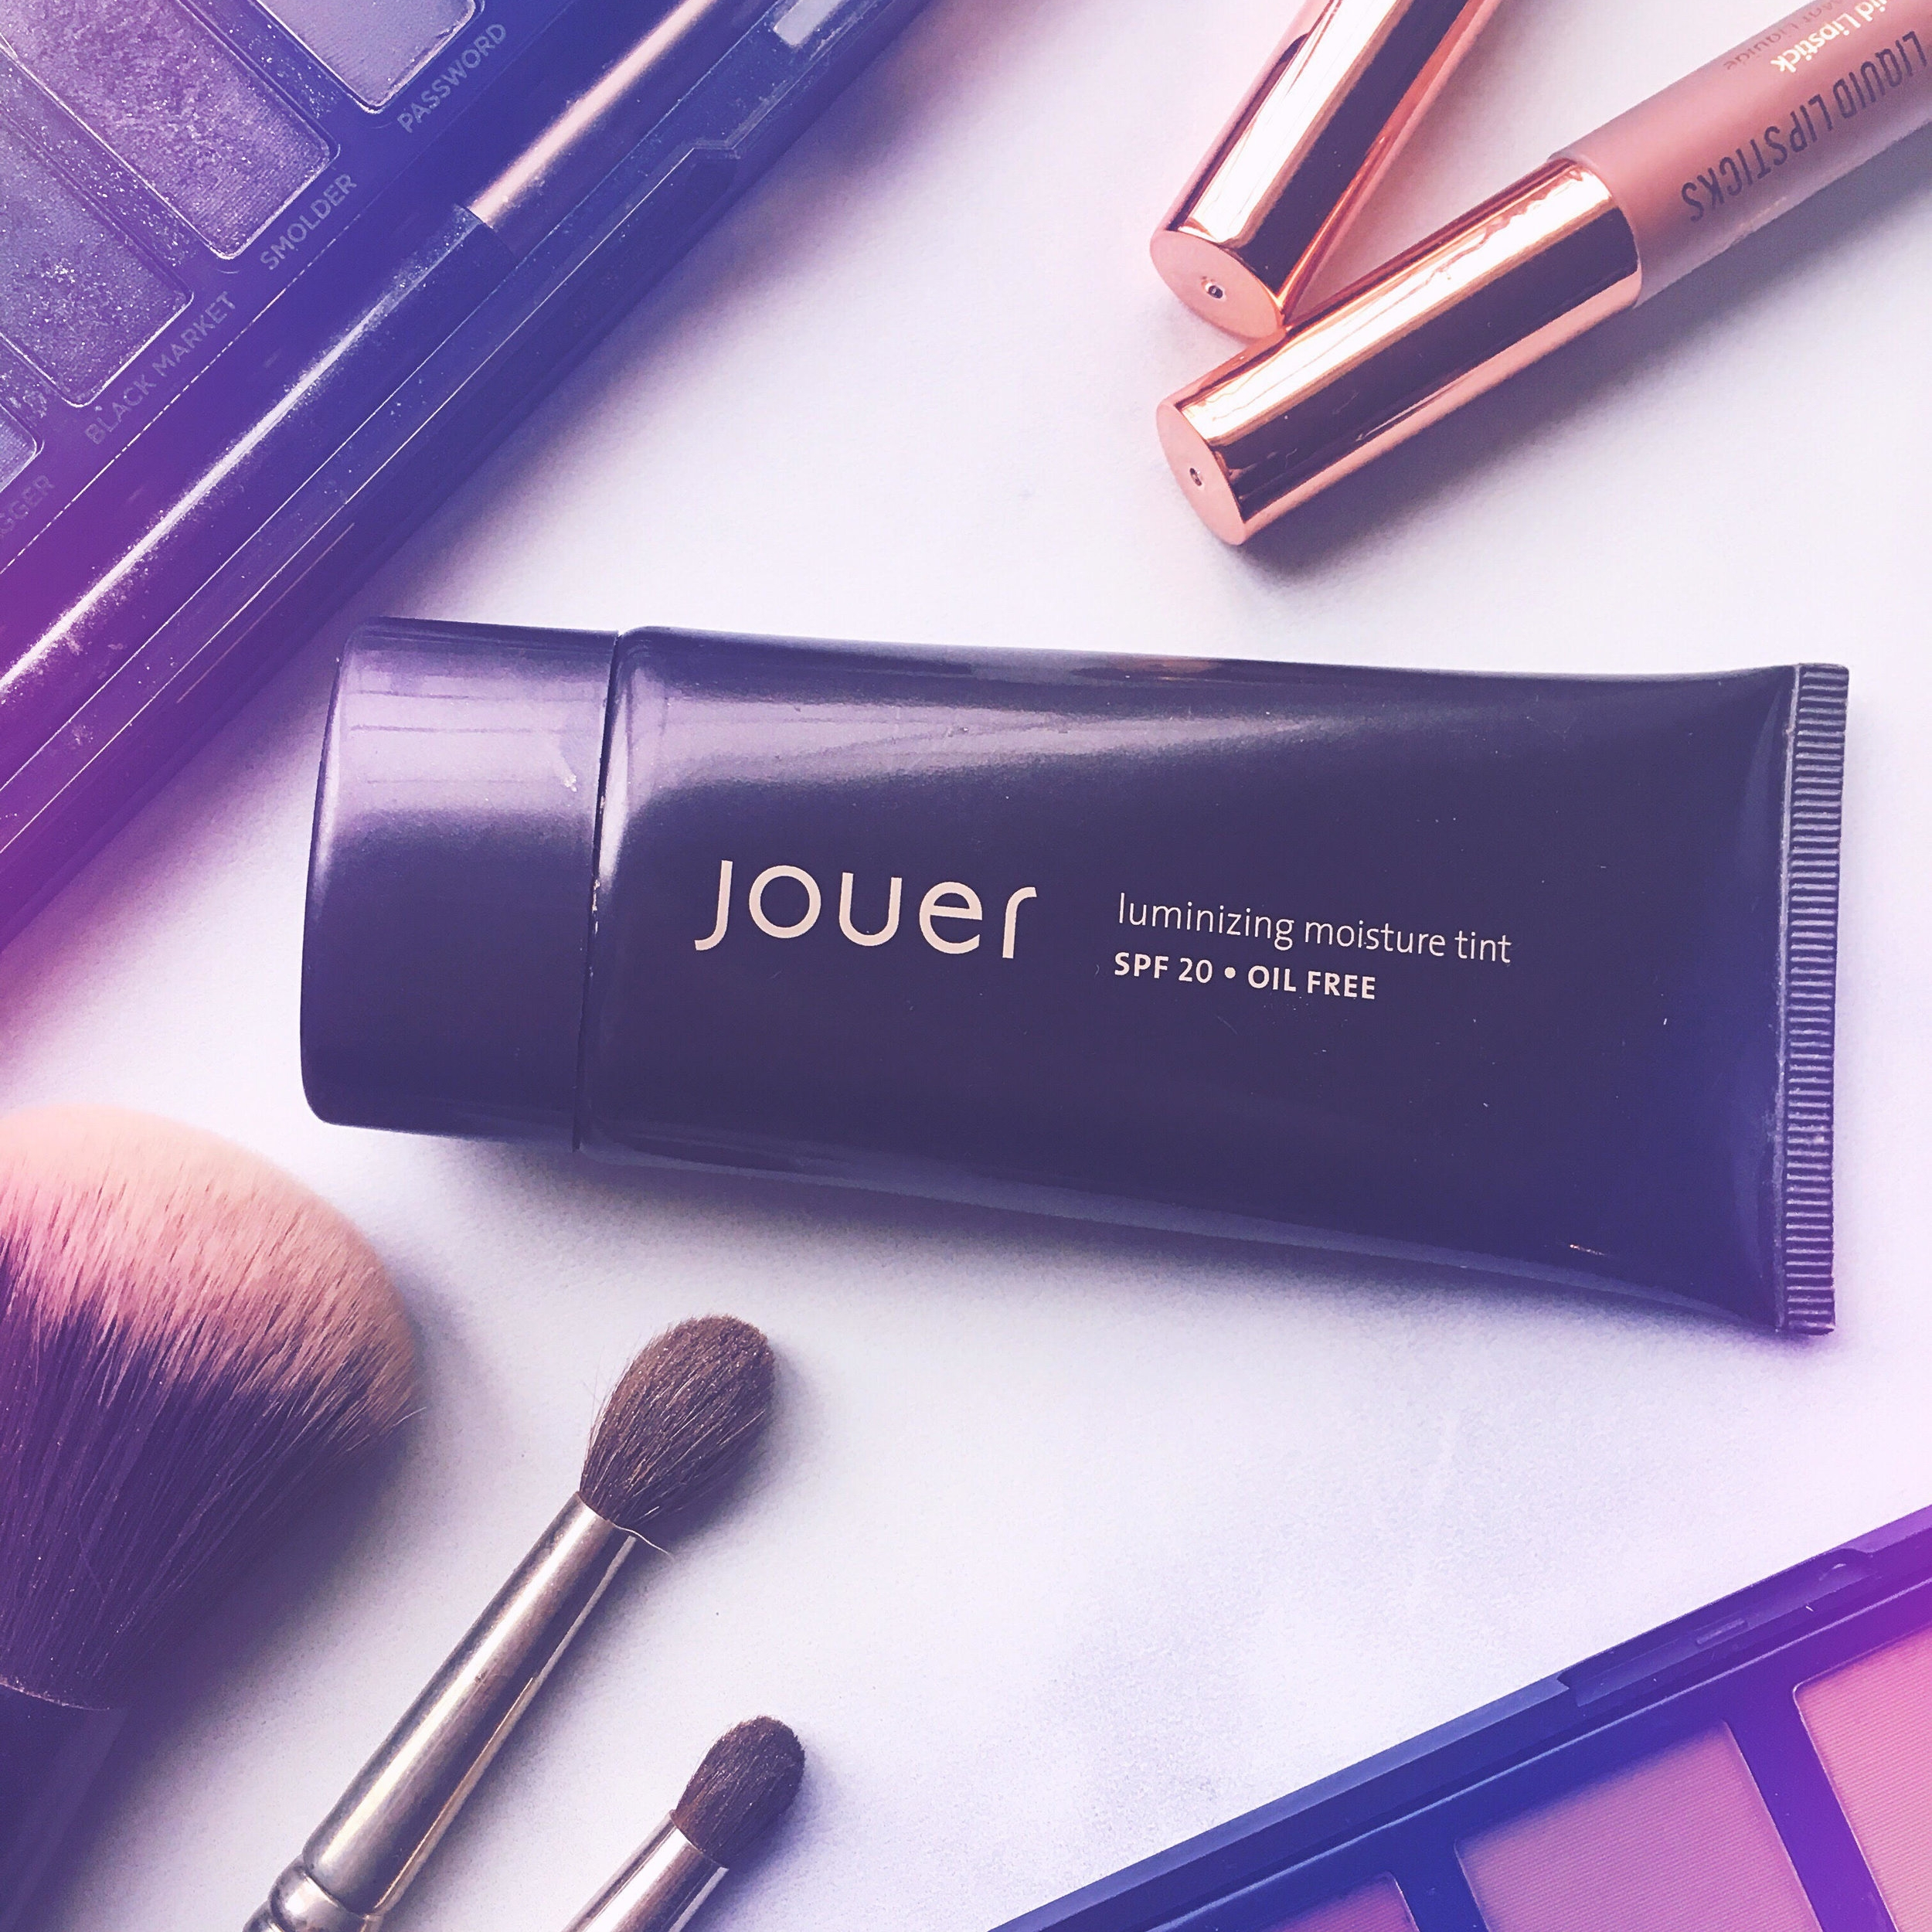 Jouer Cosmetics foundation